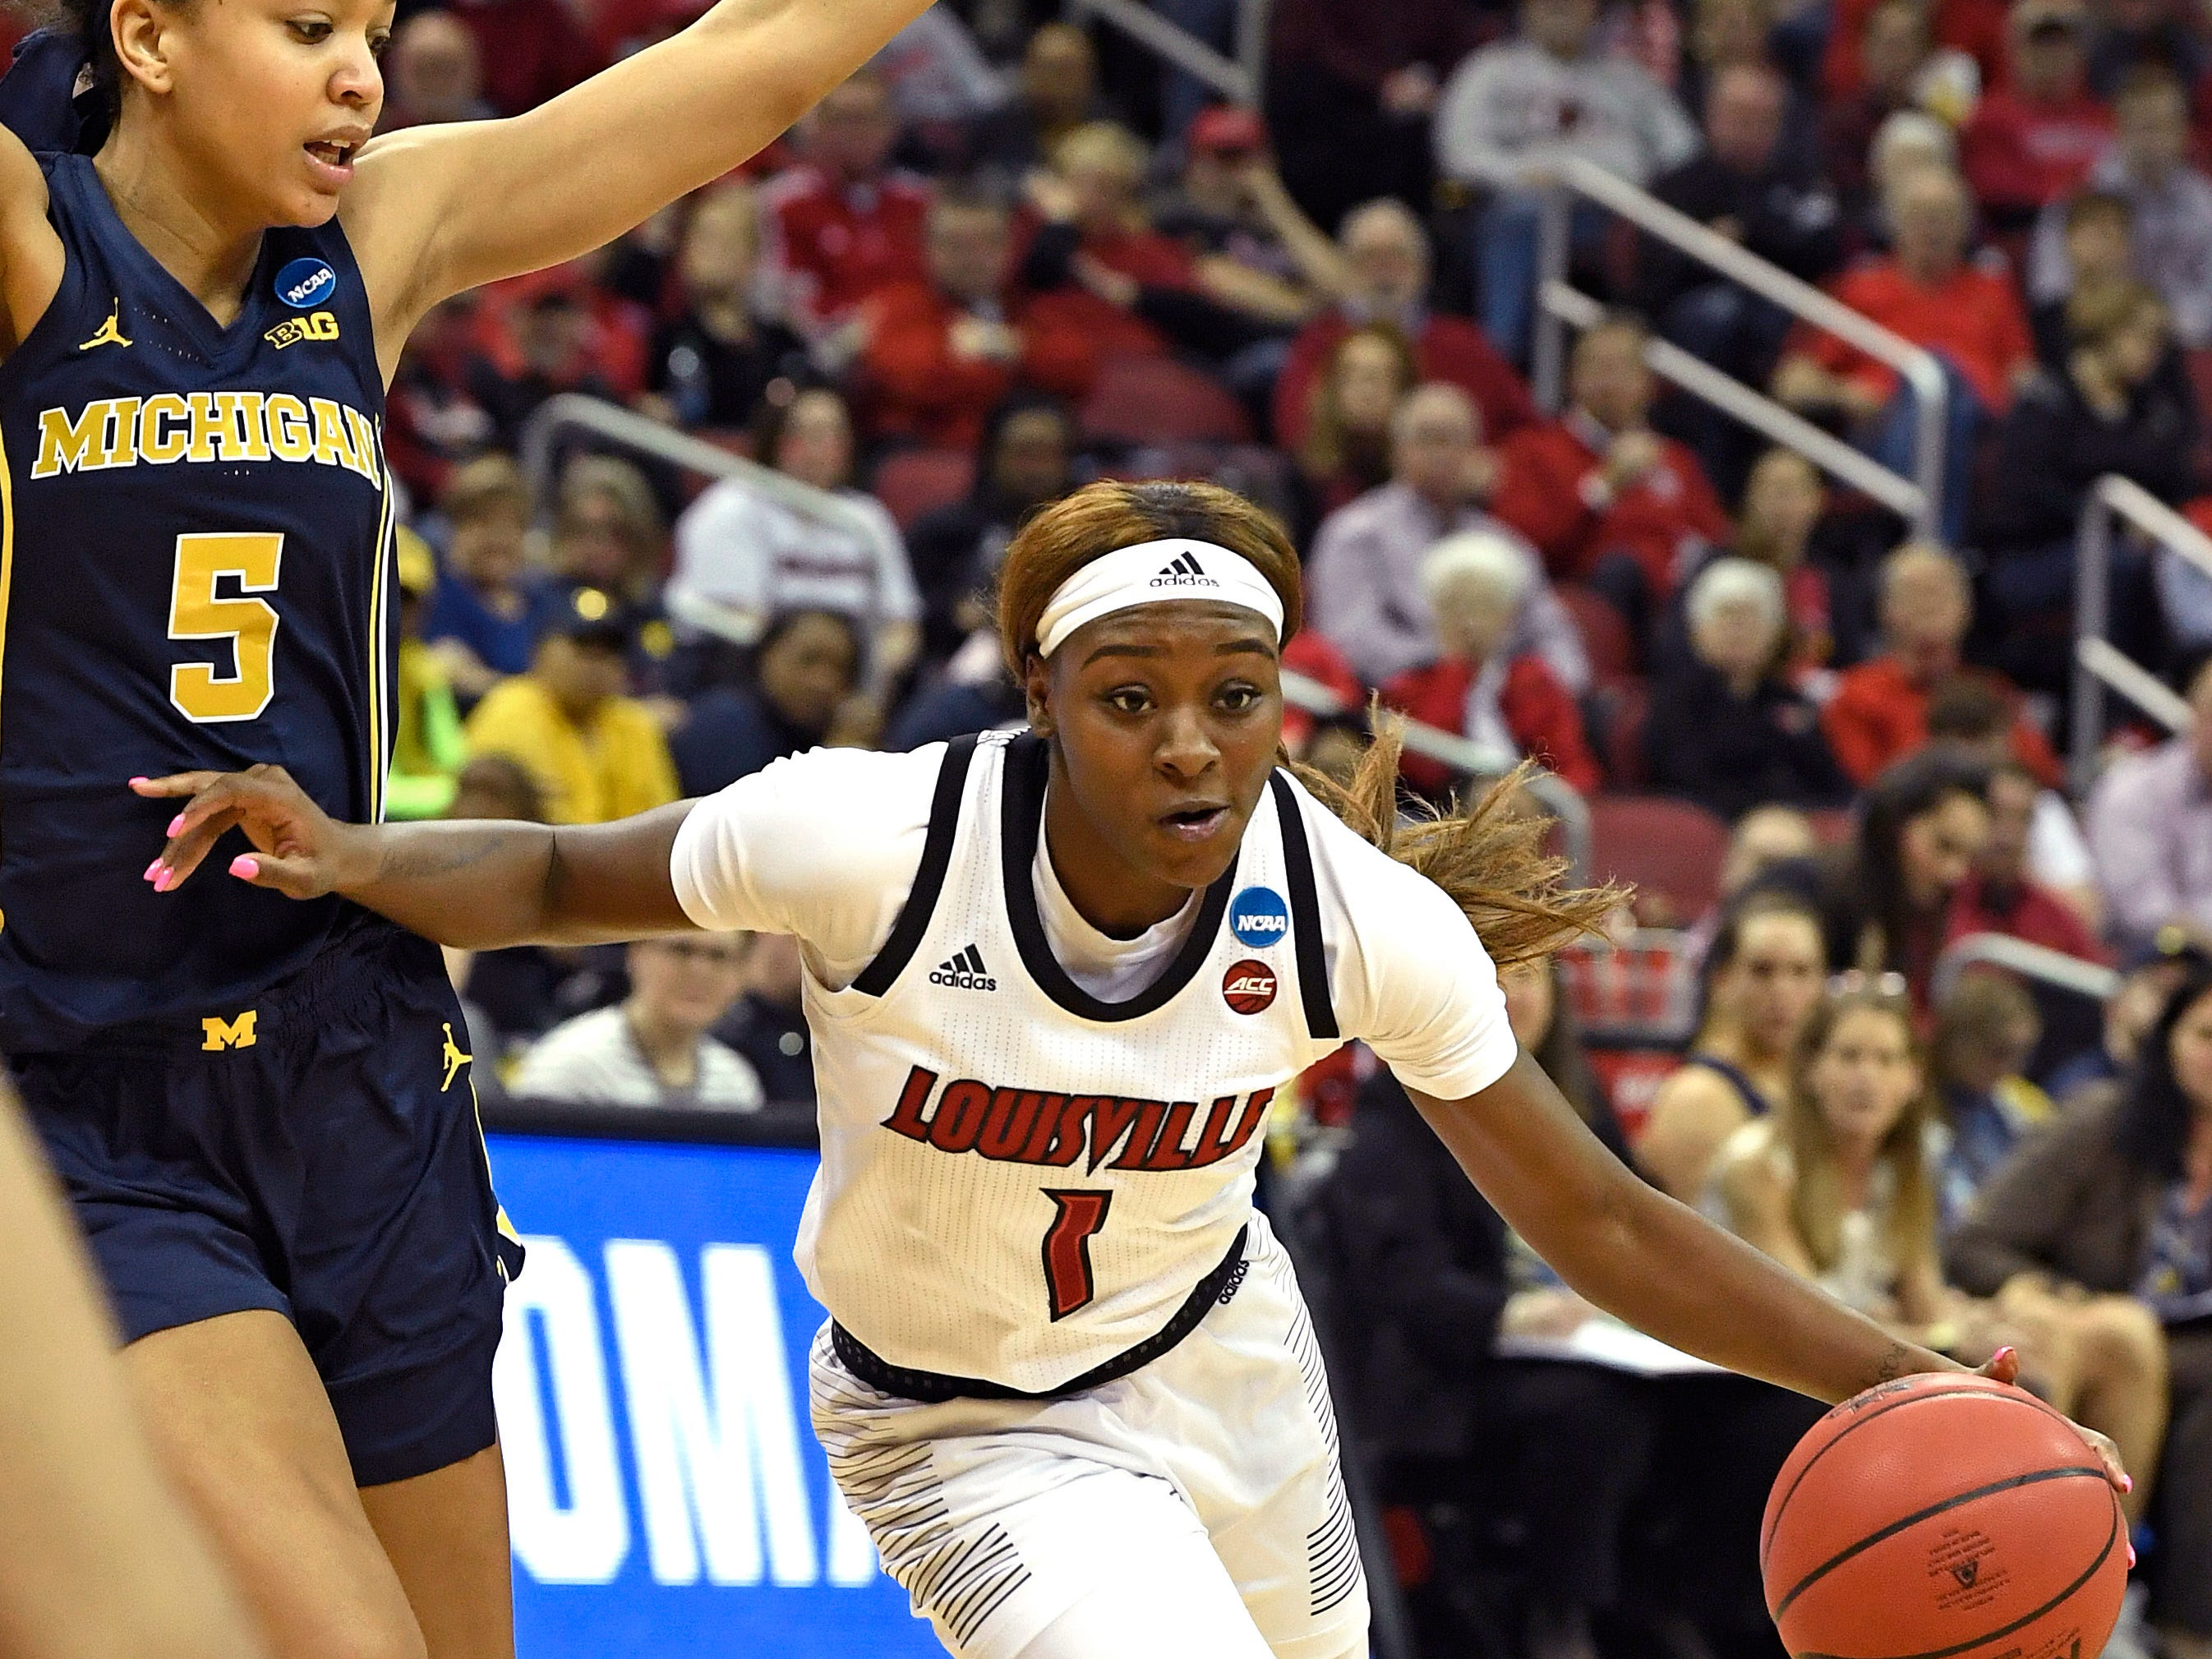 Louisville guard Dana Evans drives past the defense of Michigan forward Kayla Robbins.